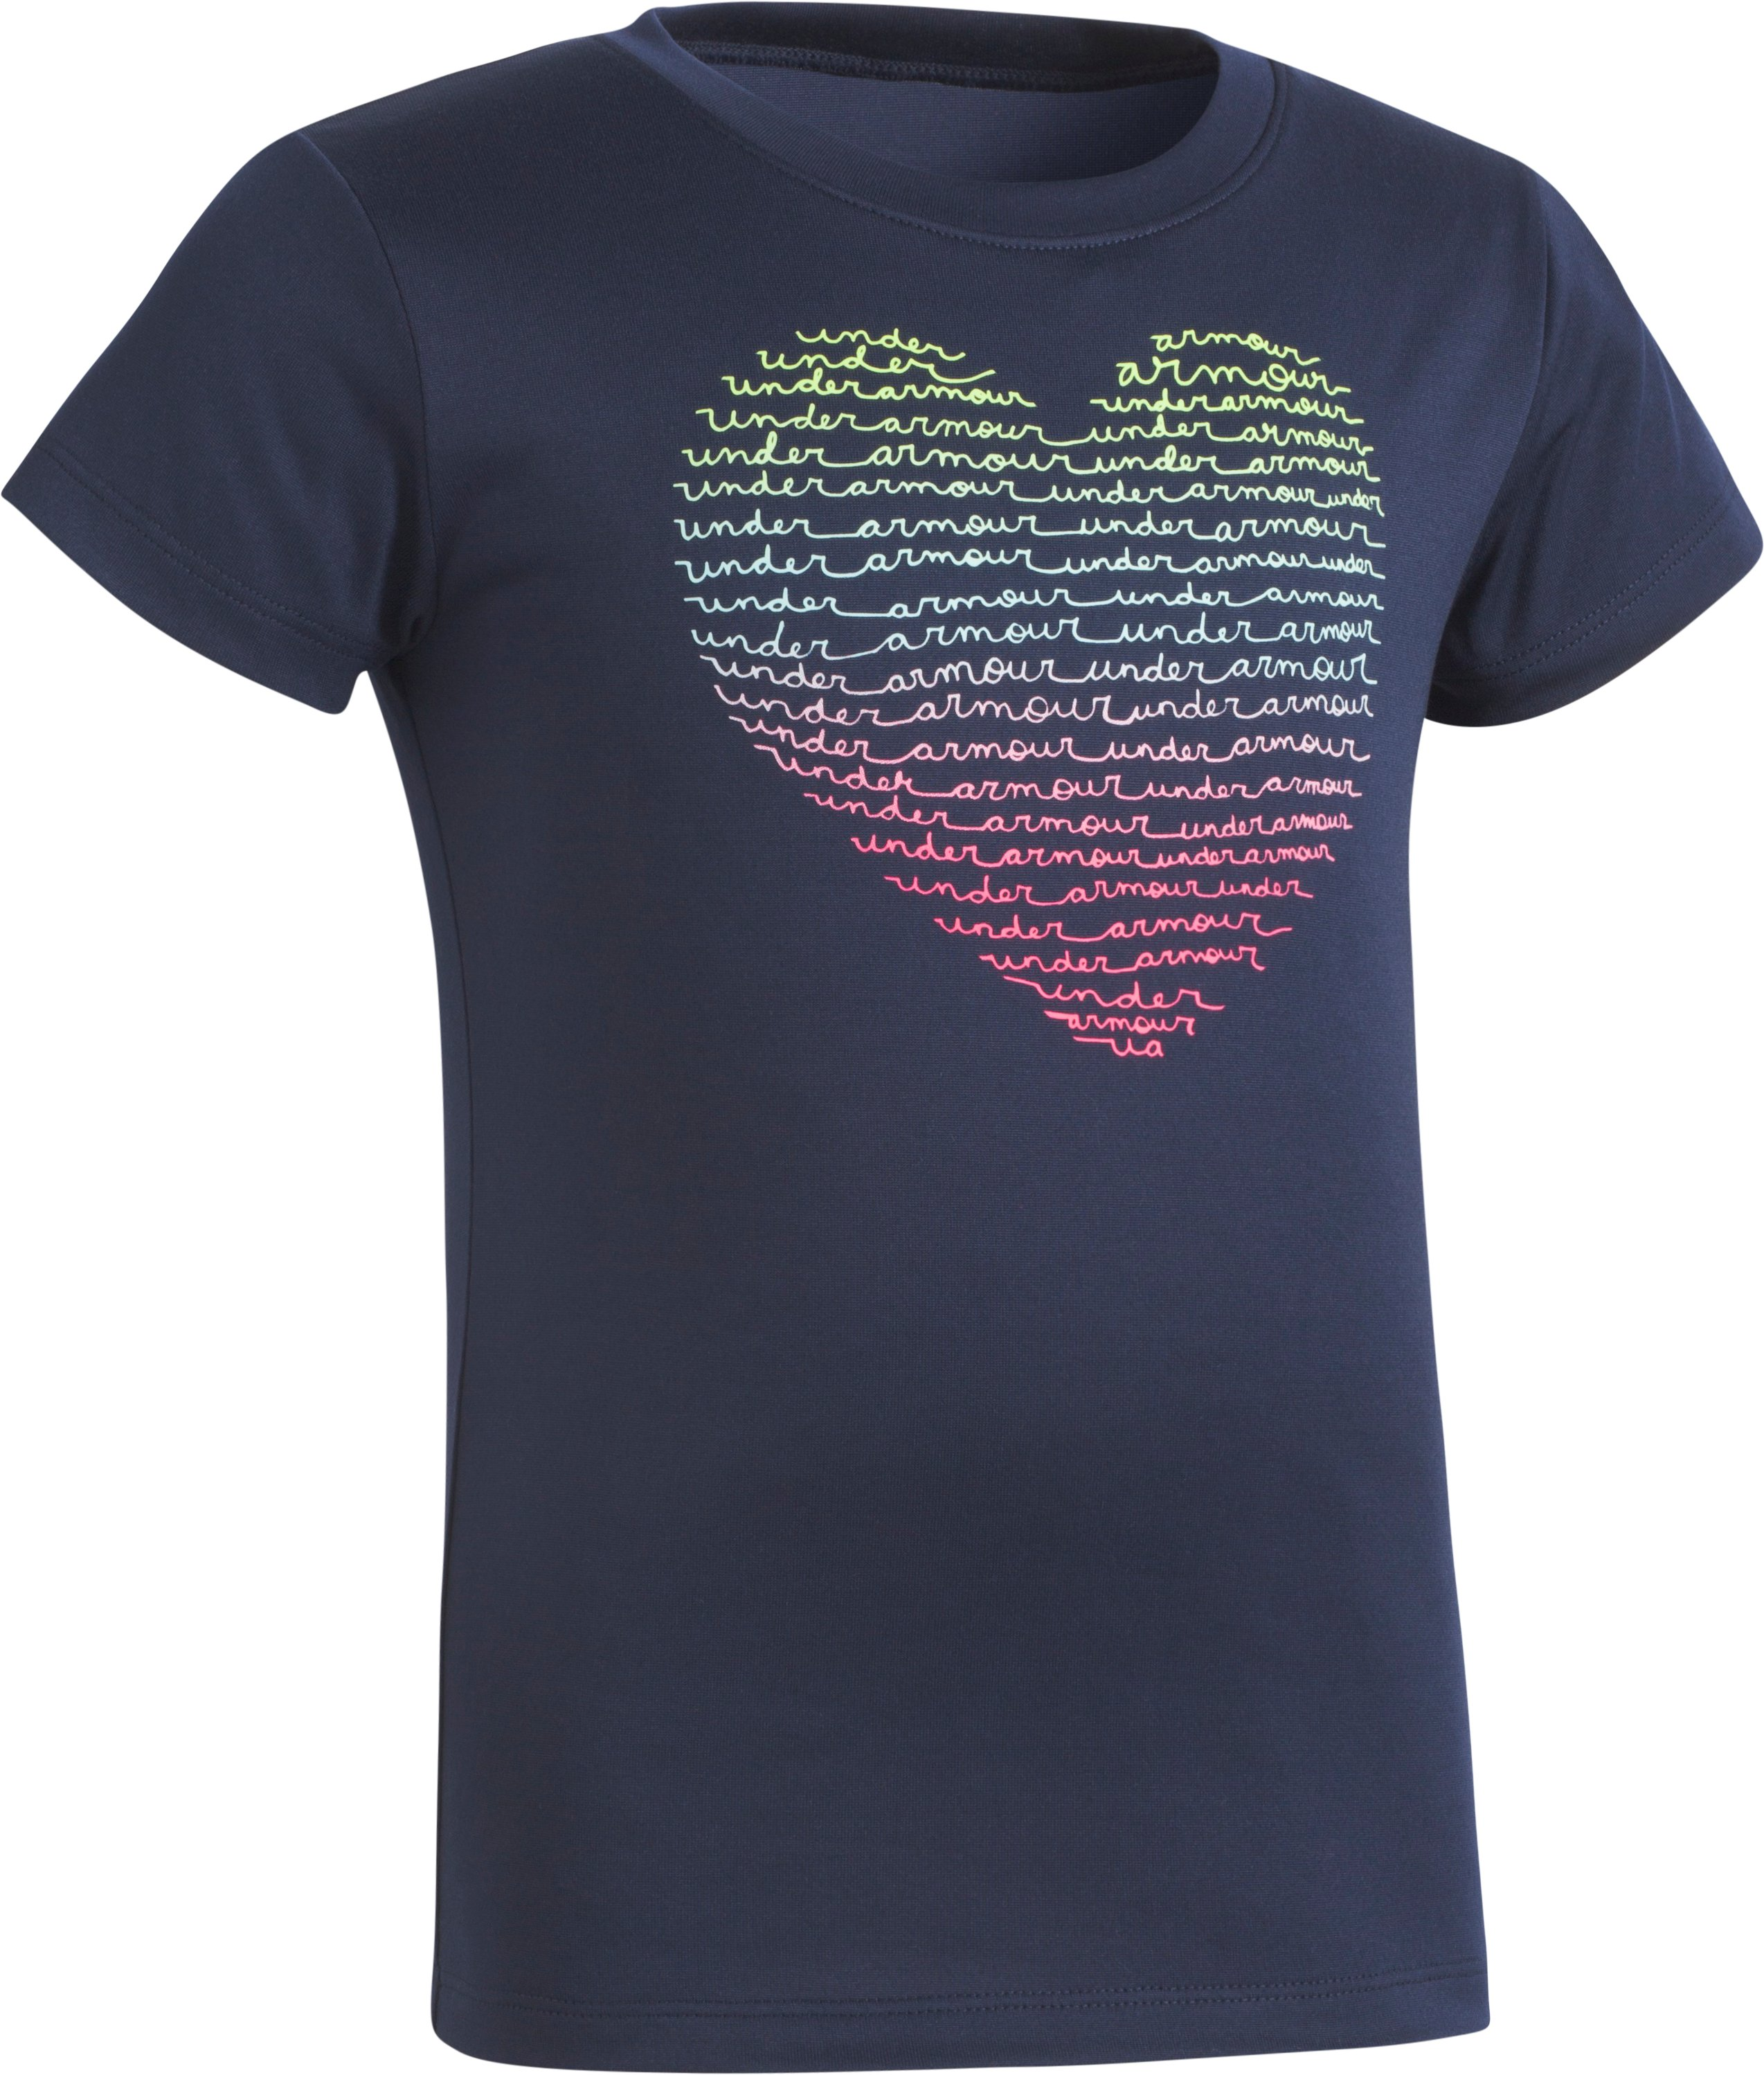 Girls' Pre-School UA Heart Short Sleeve T-Shirt, Midnight Navy